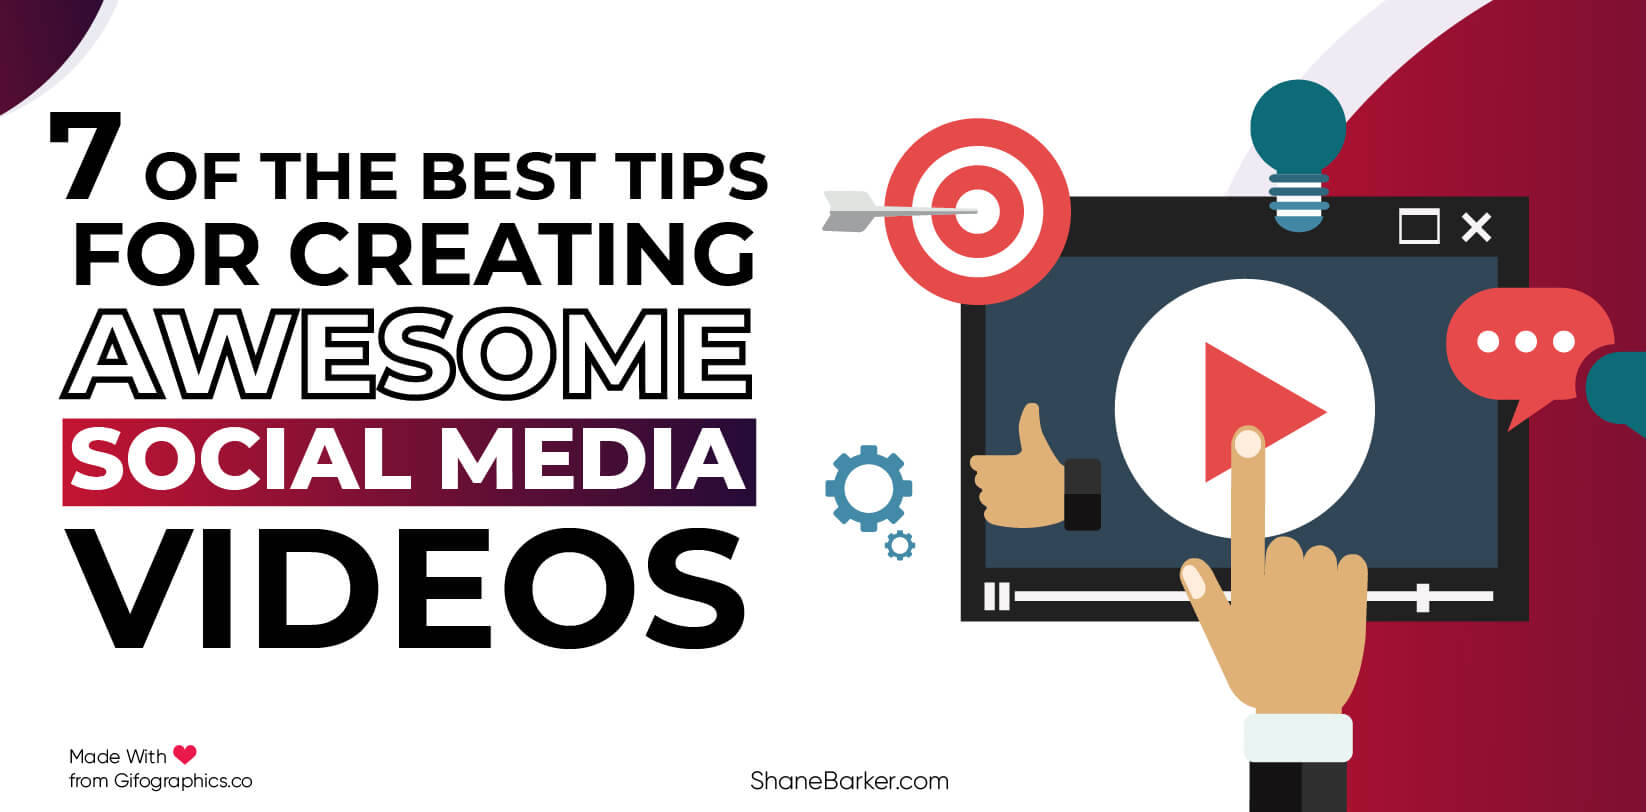 7 of the Best Tips For Creating Awesome Social Media Videos